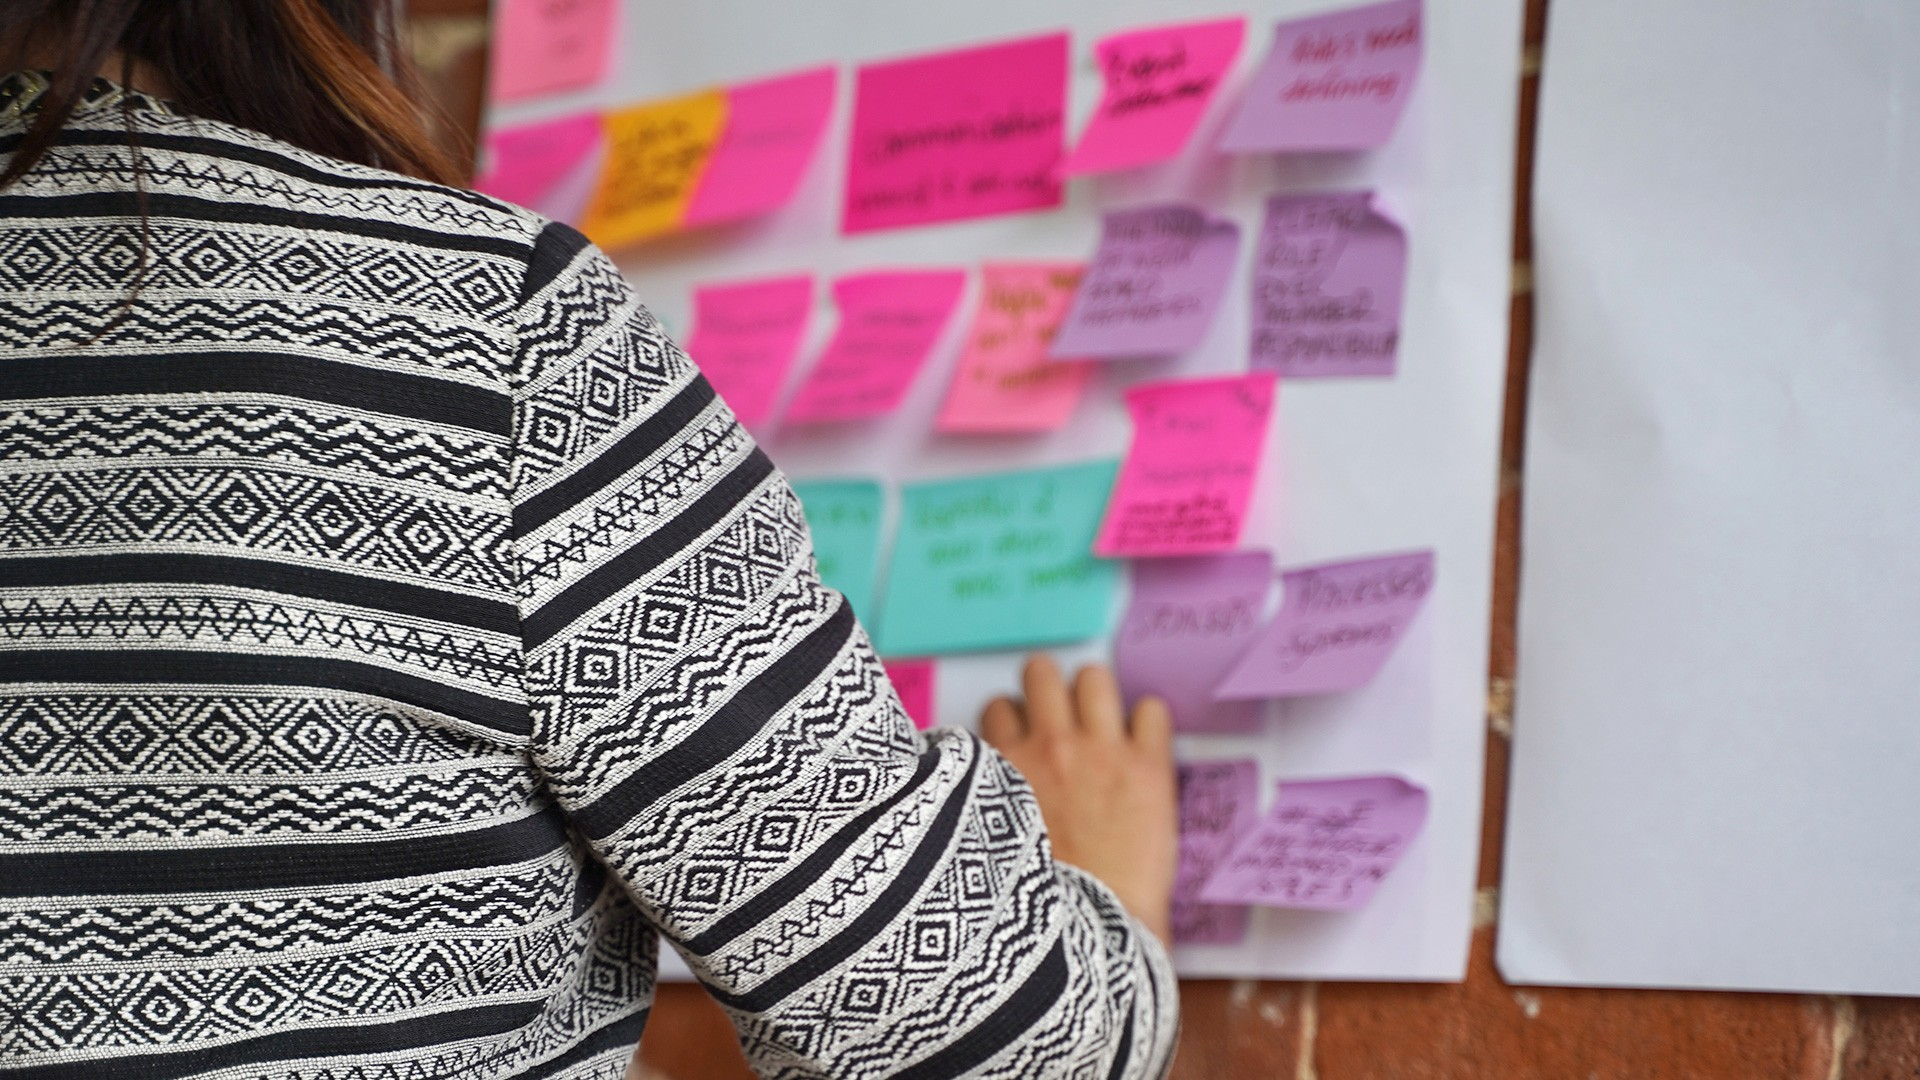 Lynda Henderson attaching sticky notes to the wall during a workshop